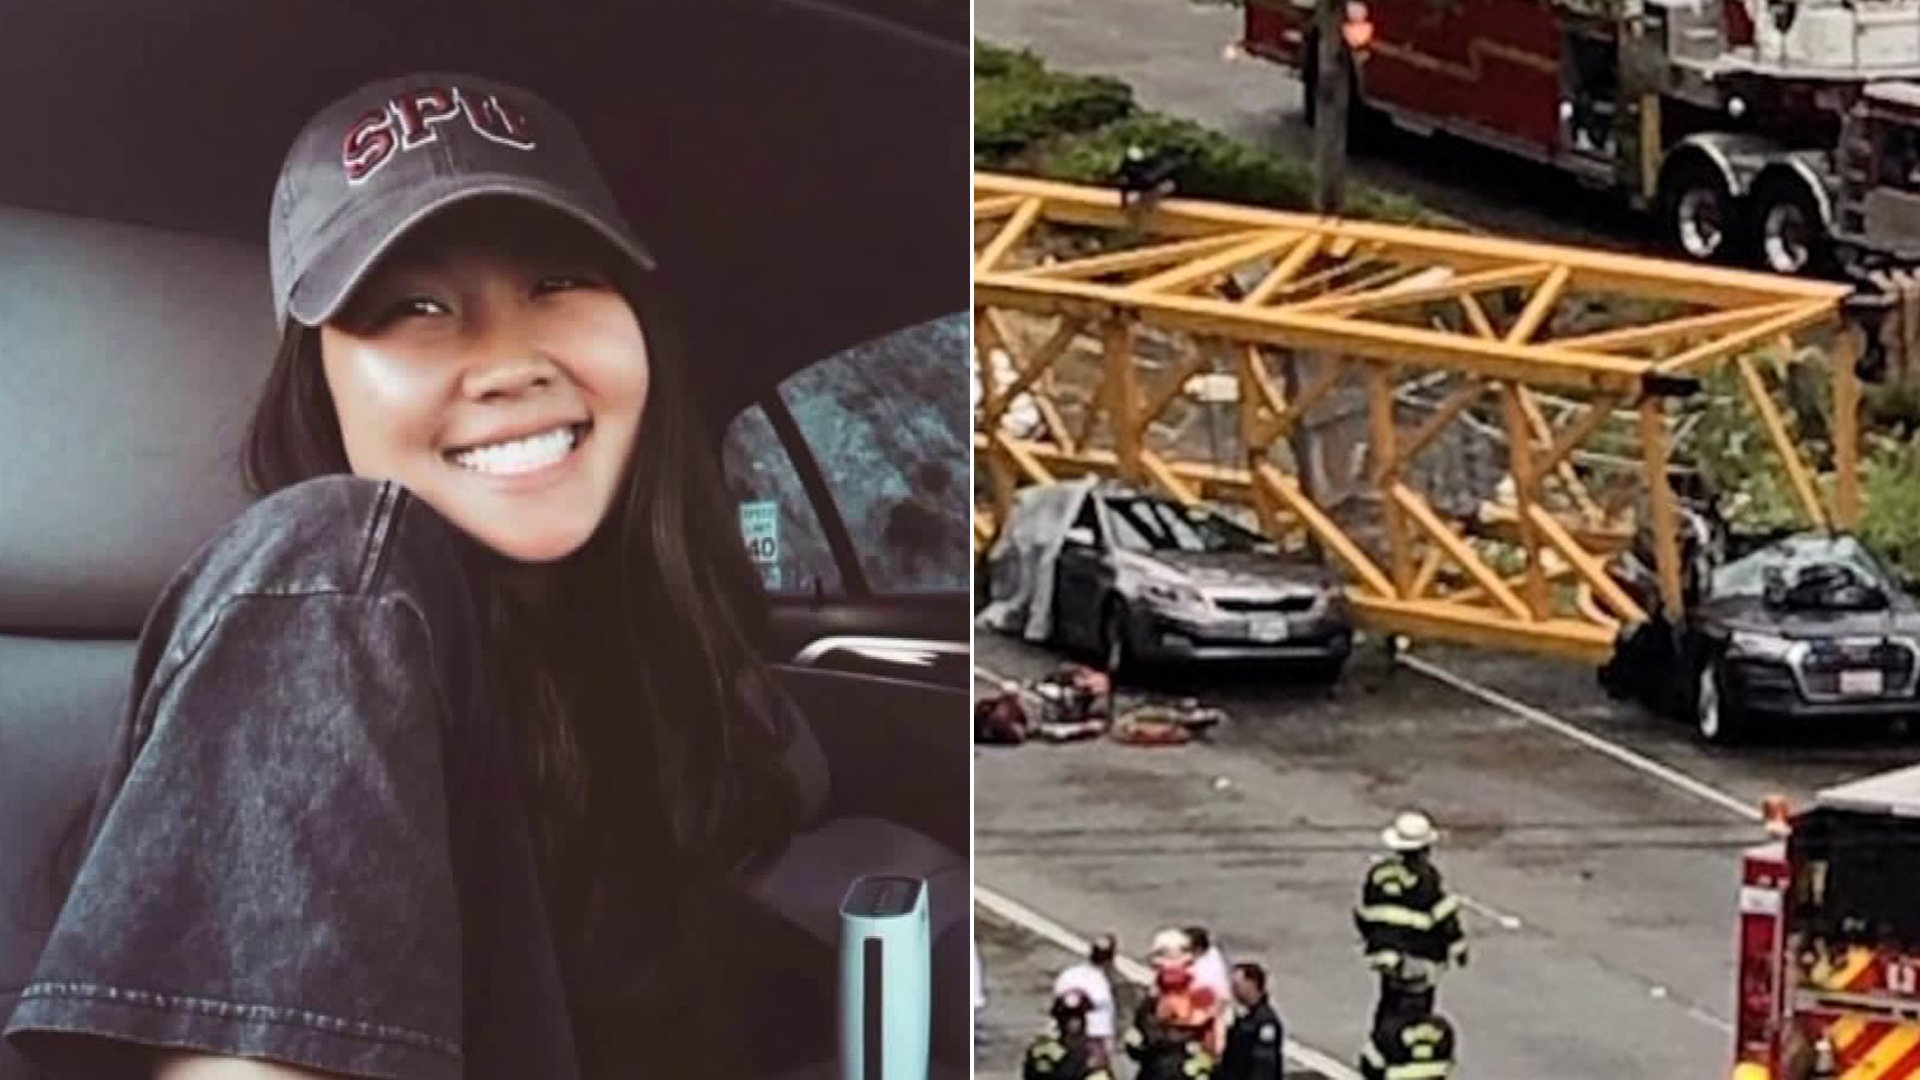 Sarah Wong is seen in an undated photo on left and cars crushed under a construction crane in downtown Seattle are seen on the right. (Credit: Morgan Ludlow via CNN)